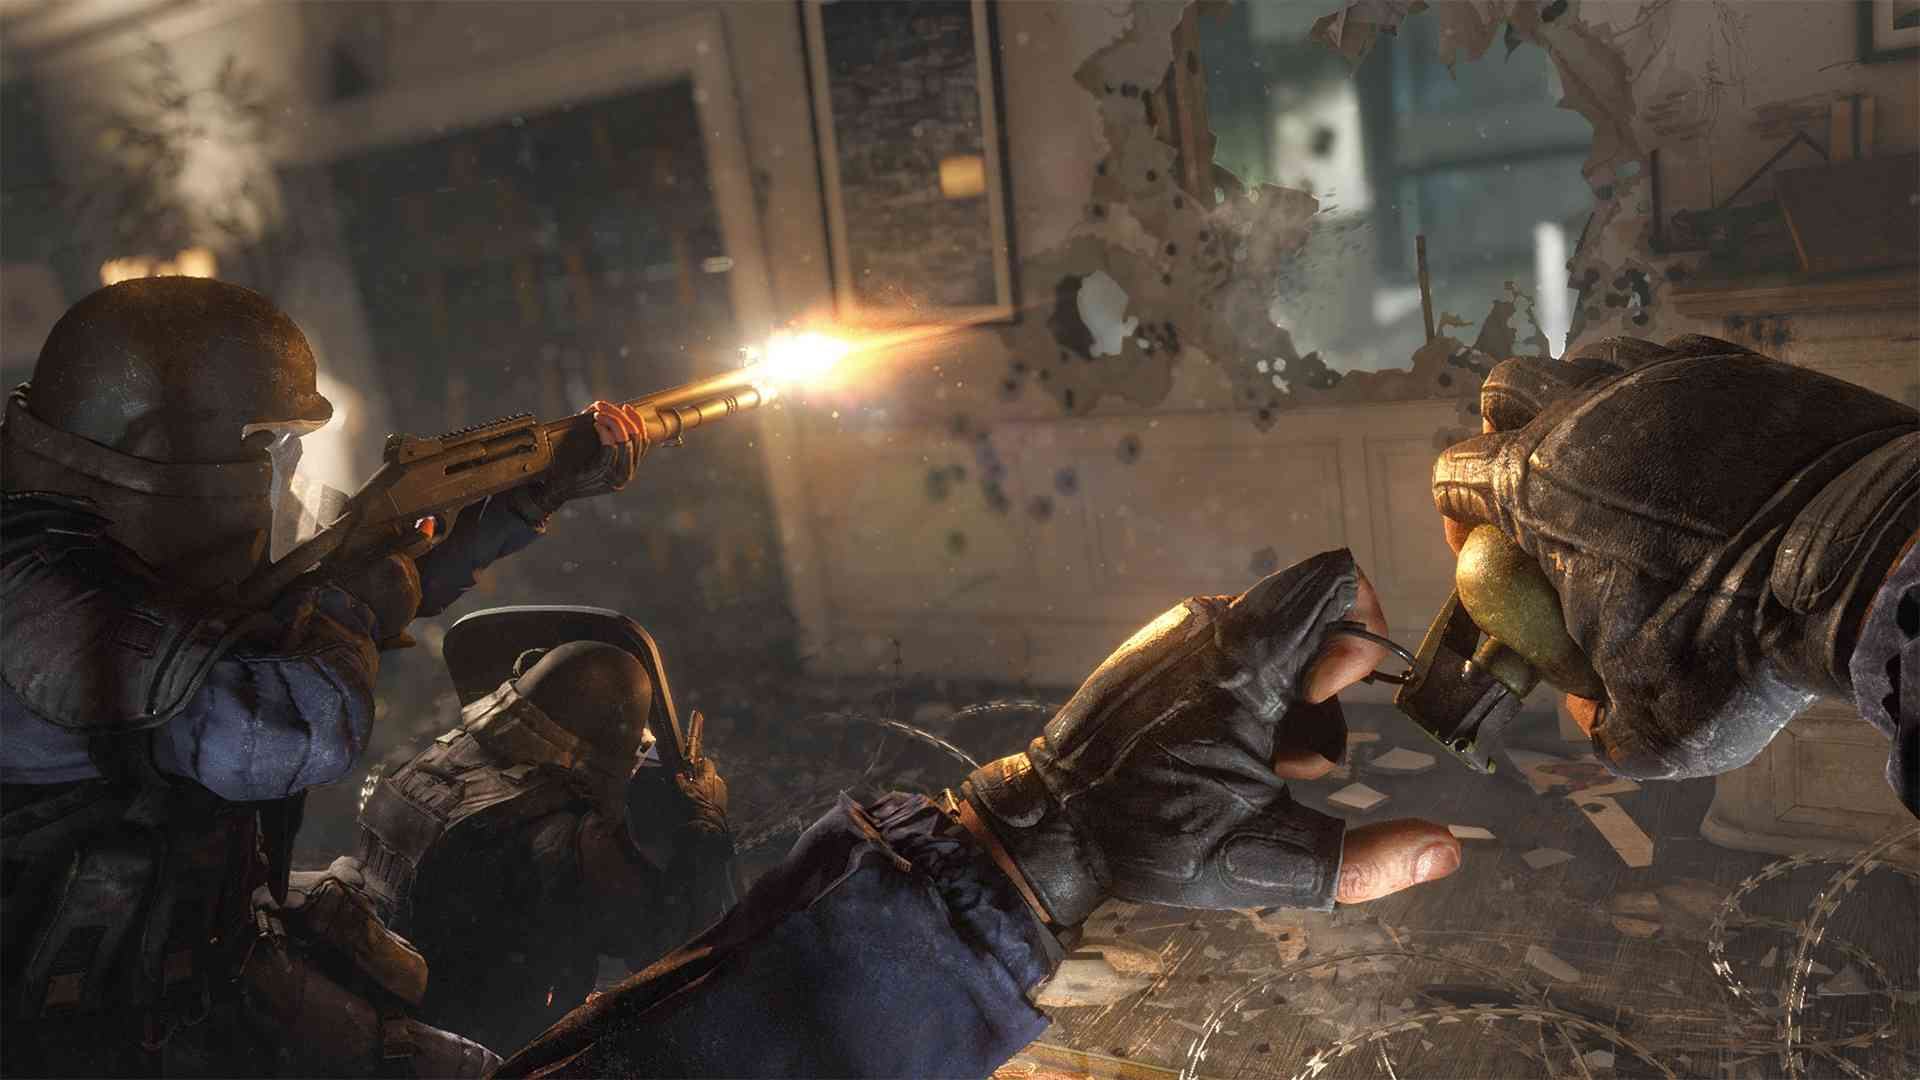 Rainbow Six Siege Preview - Poor Visuals & Unbalanced, But Still An